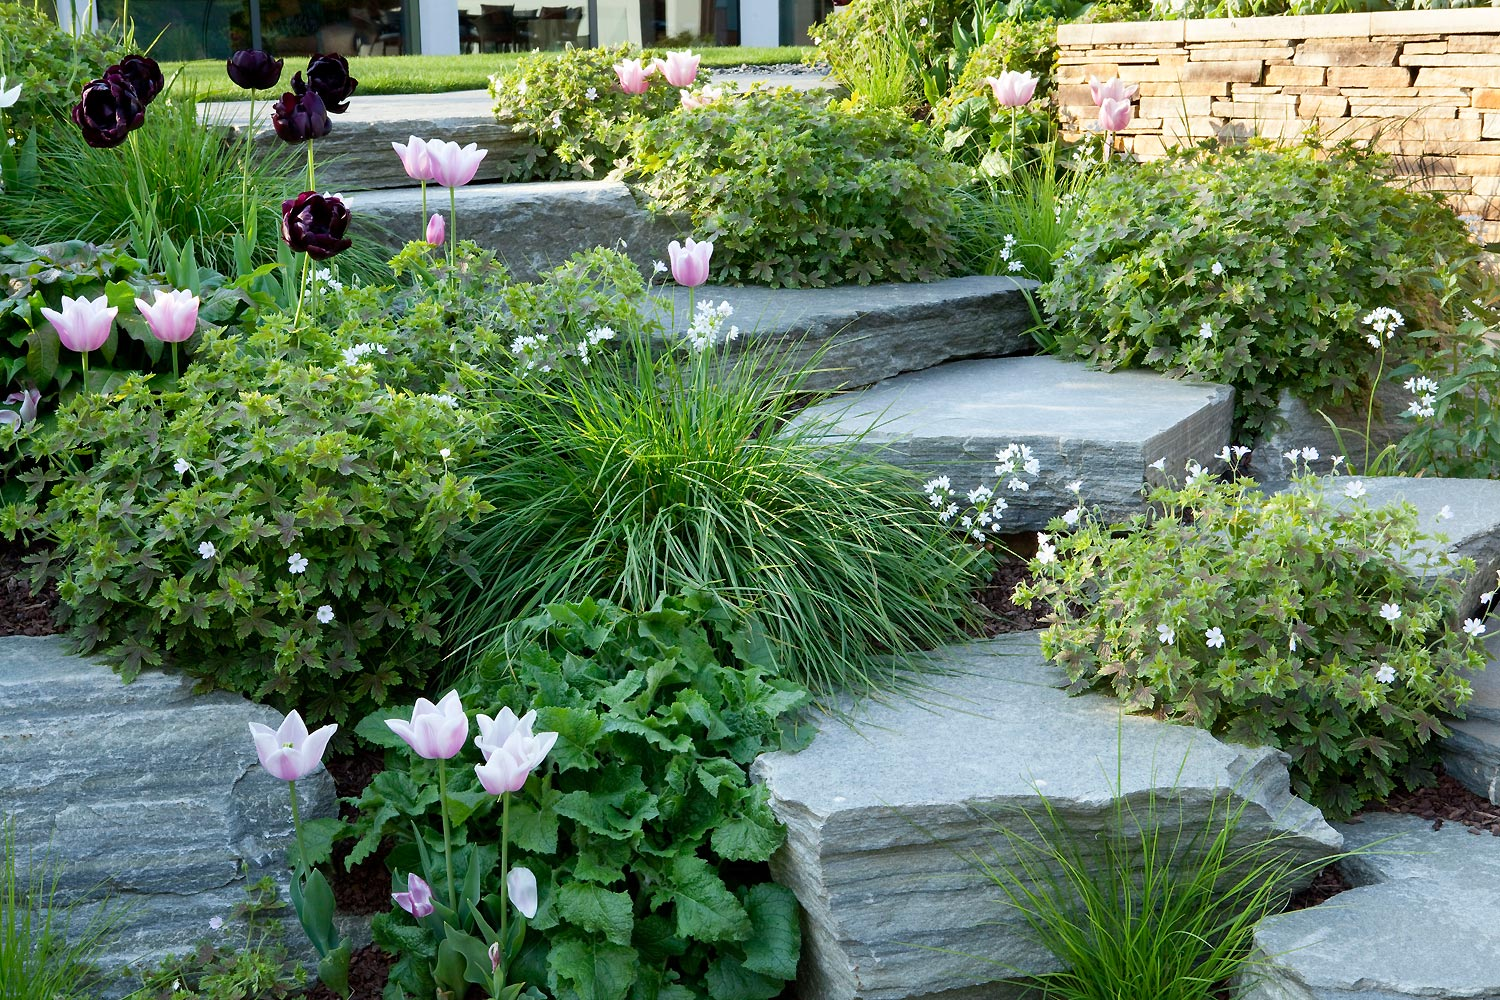 In love with beauty julie toll landscape garden design for Beautiful landscape design